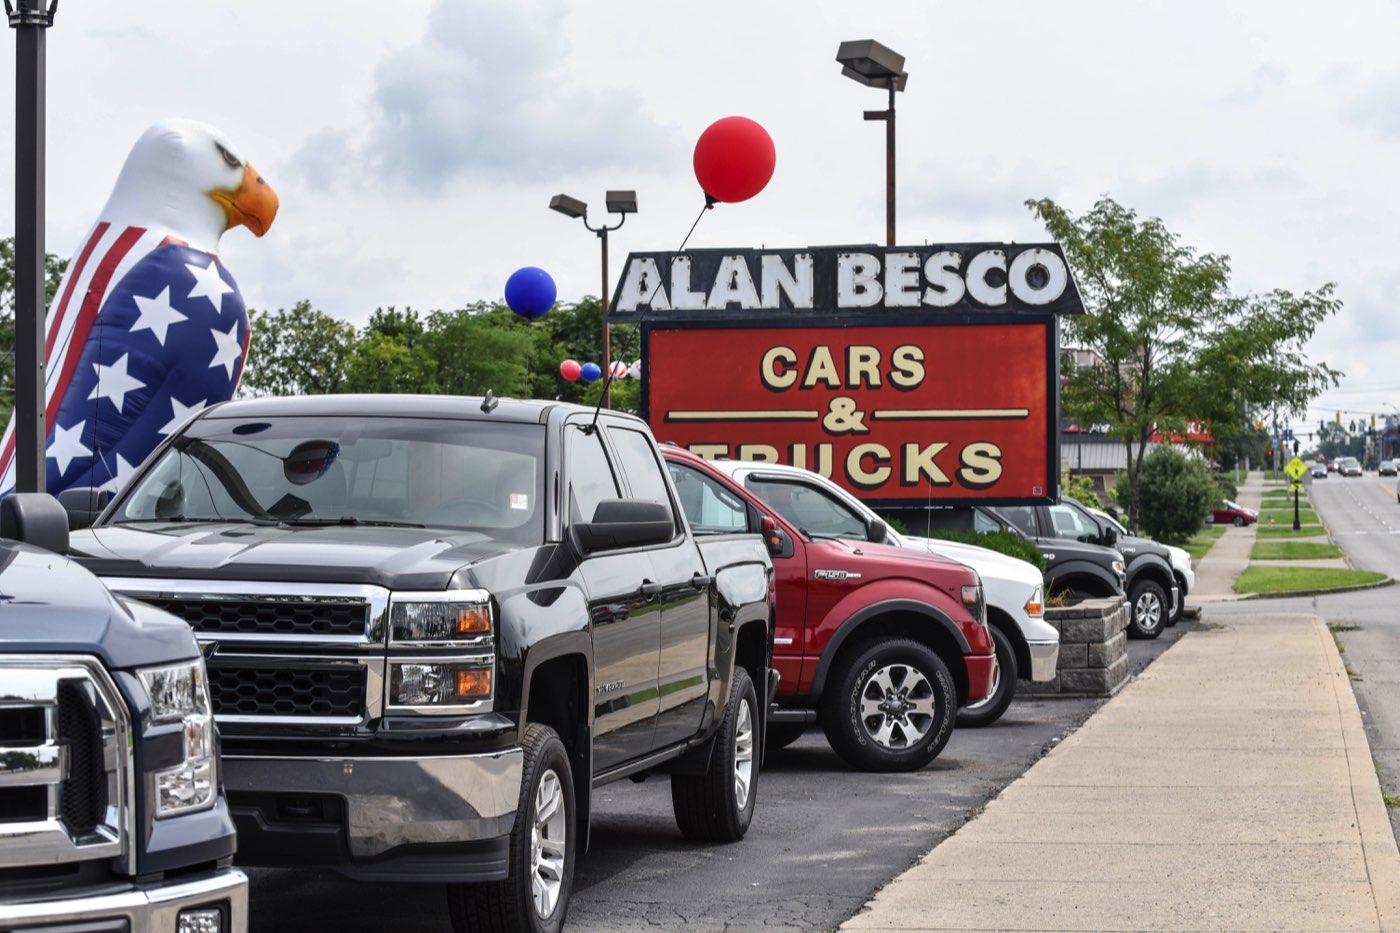 Alan Besco Gallery Pre Owned Cars For